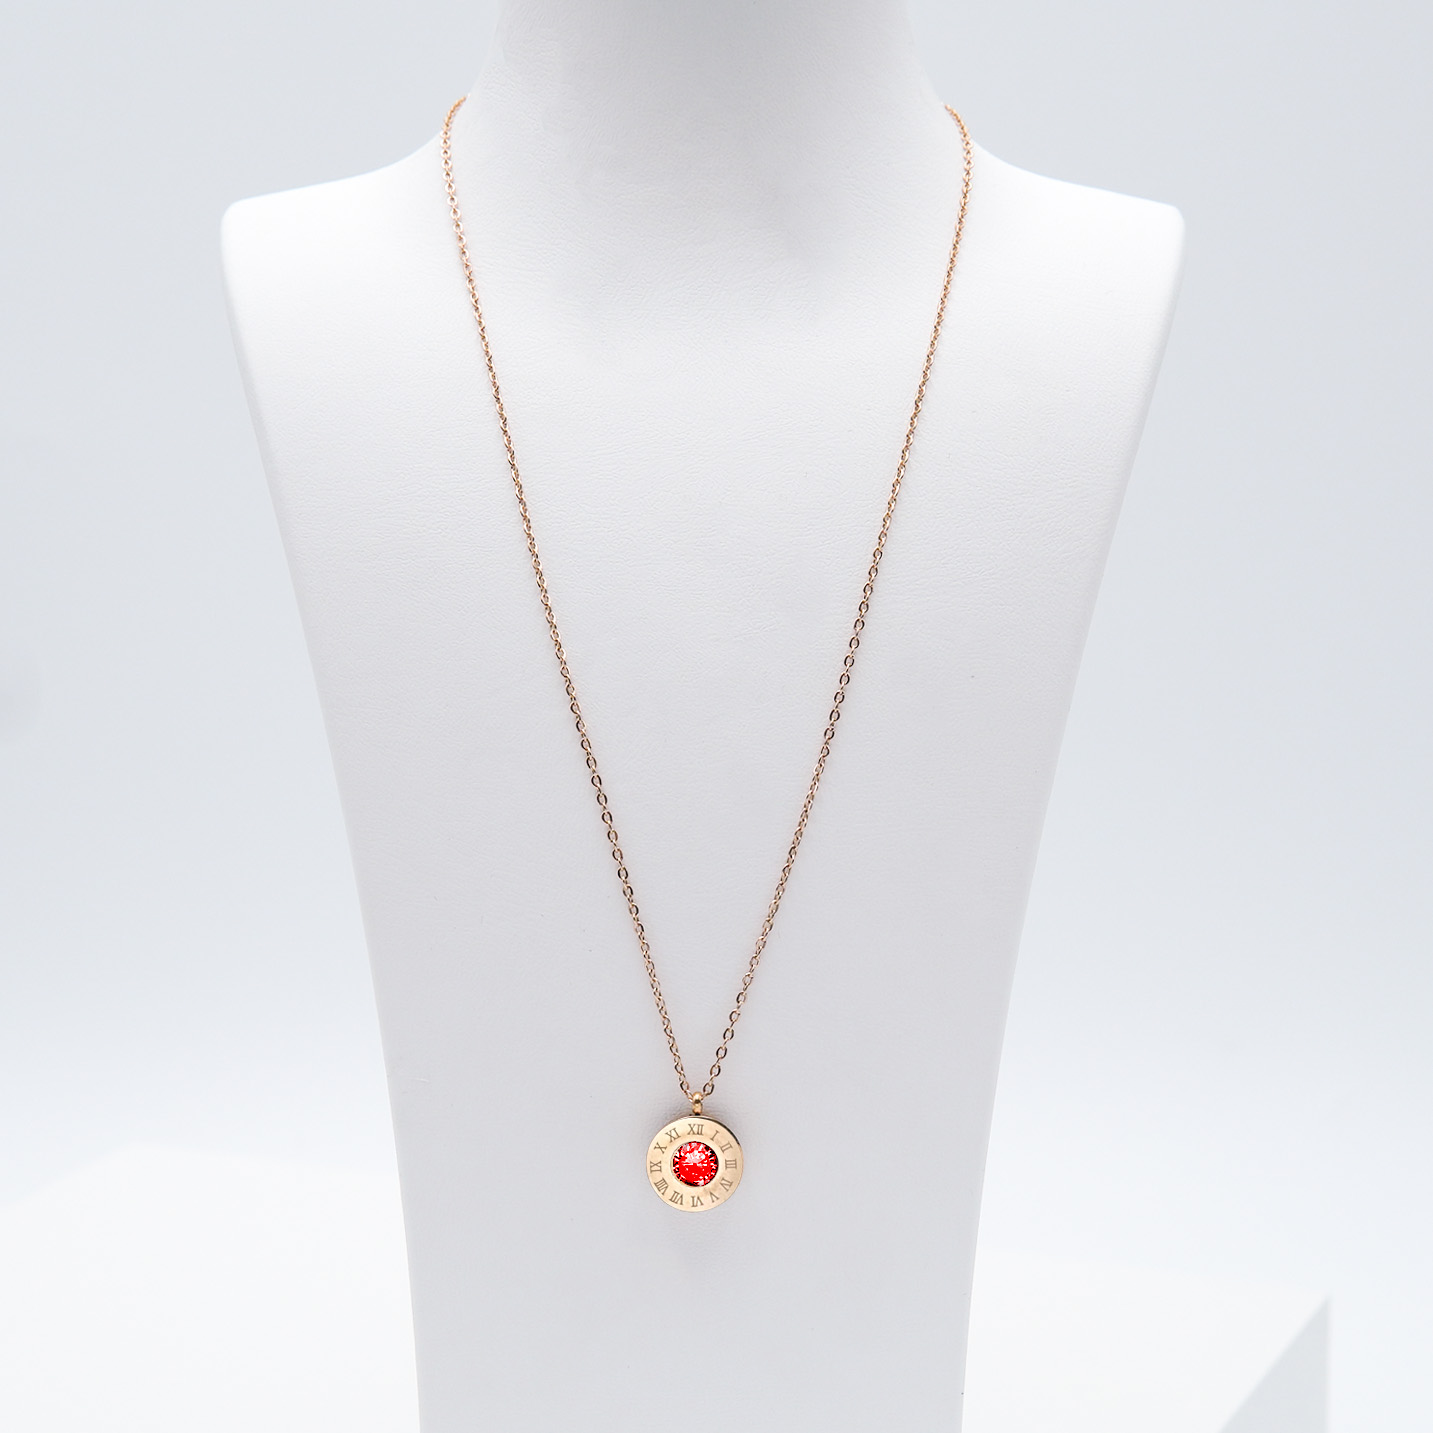 2- 4 Queen Diamonds Necklace Rose Edition Halsband Modern and trendy Necklace and women jewelry and accessories from SWEVALI fashion Sweden